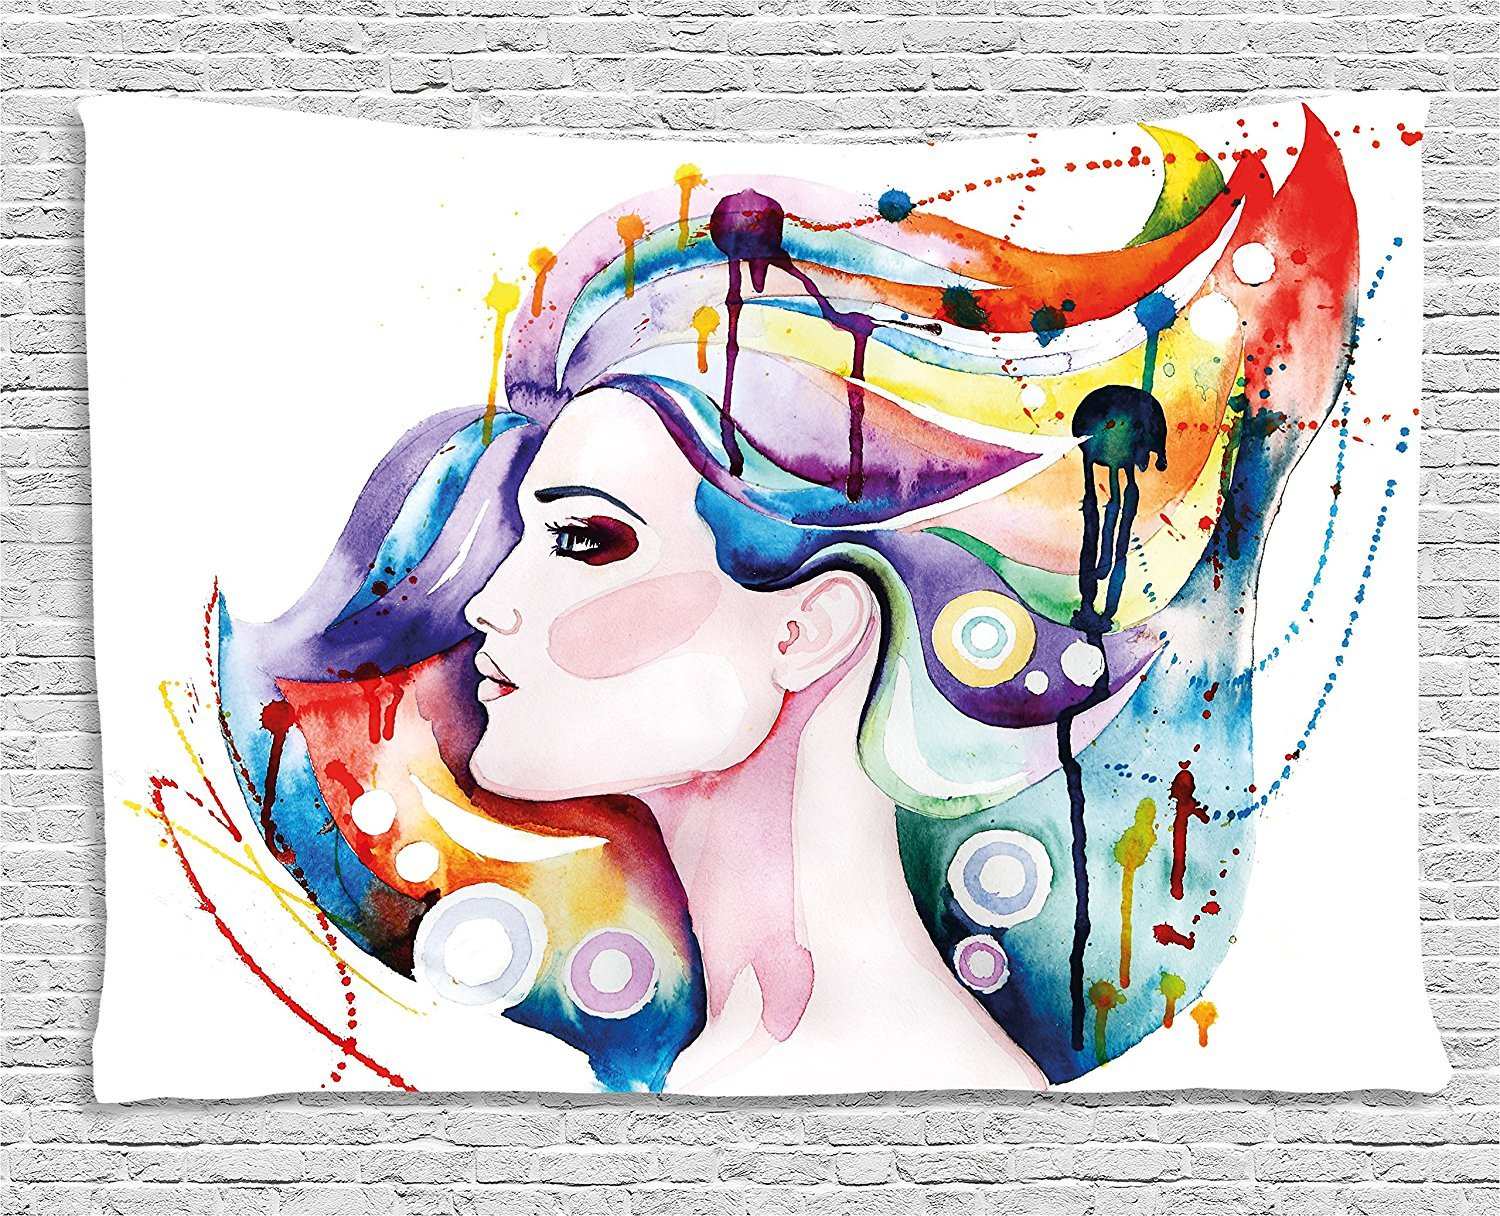 Art Tapestry, Lovely Grunge Inspired Young Woman with Rainbow Colored Hair Abstract Watercolor Art, Wall Hanging for Bedroom Living Room Dorm, 80 W X 60 L Inches, Multicolor